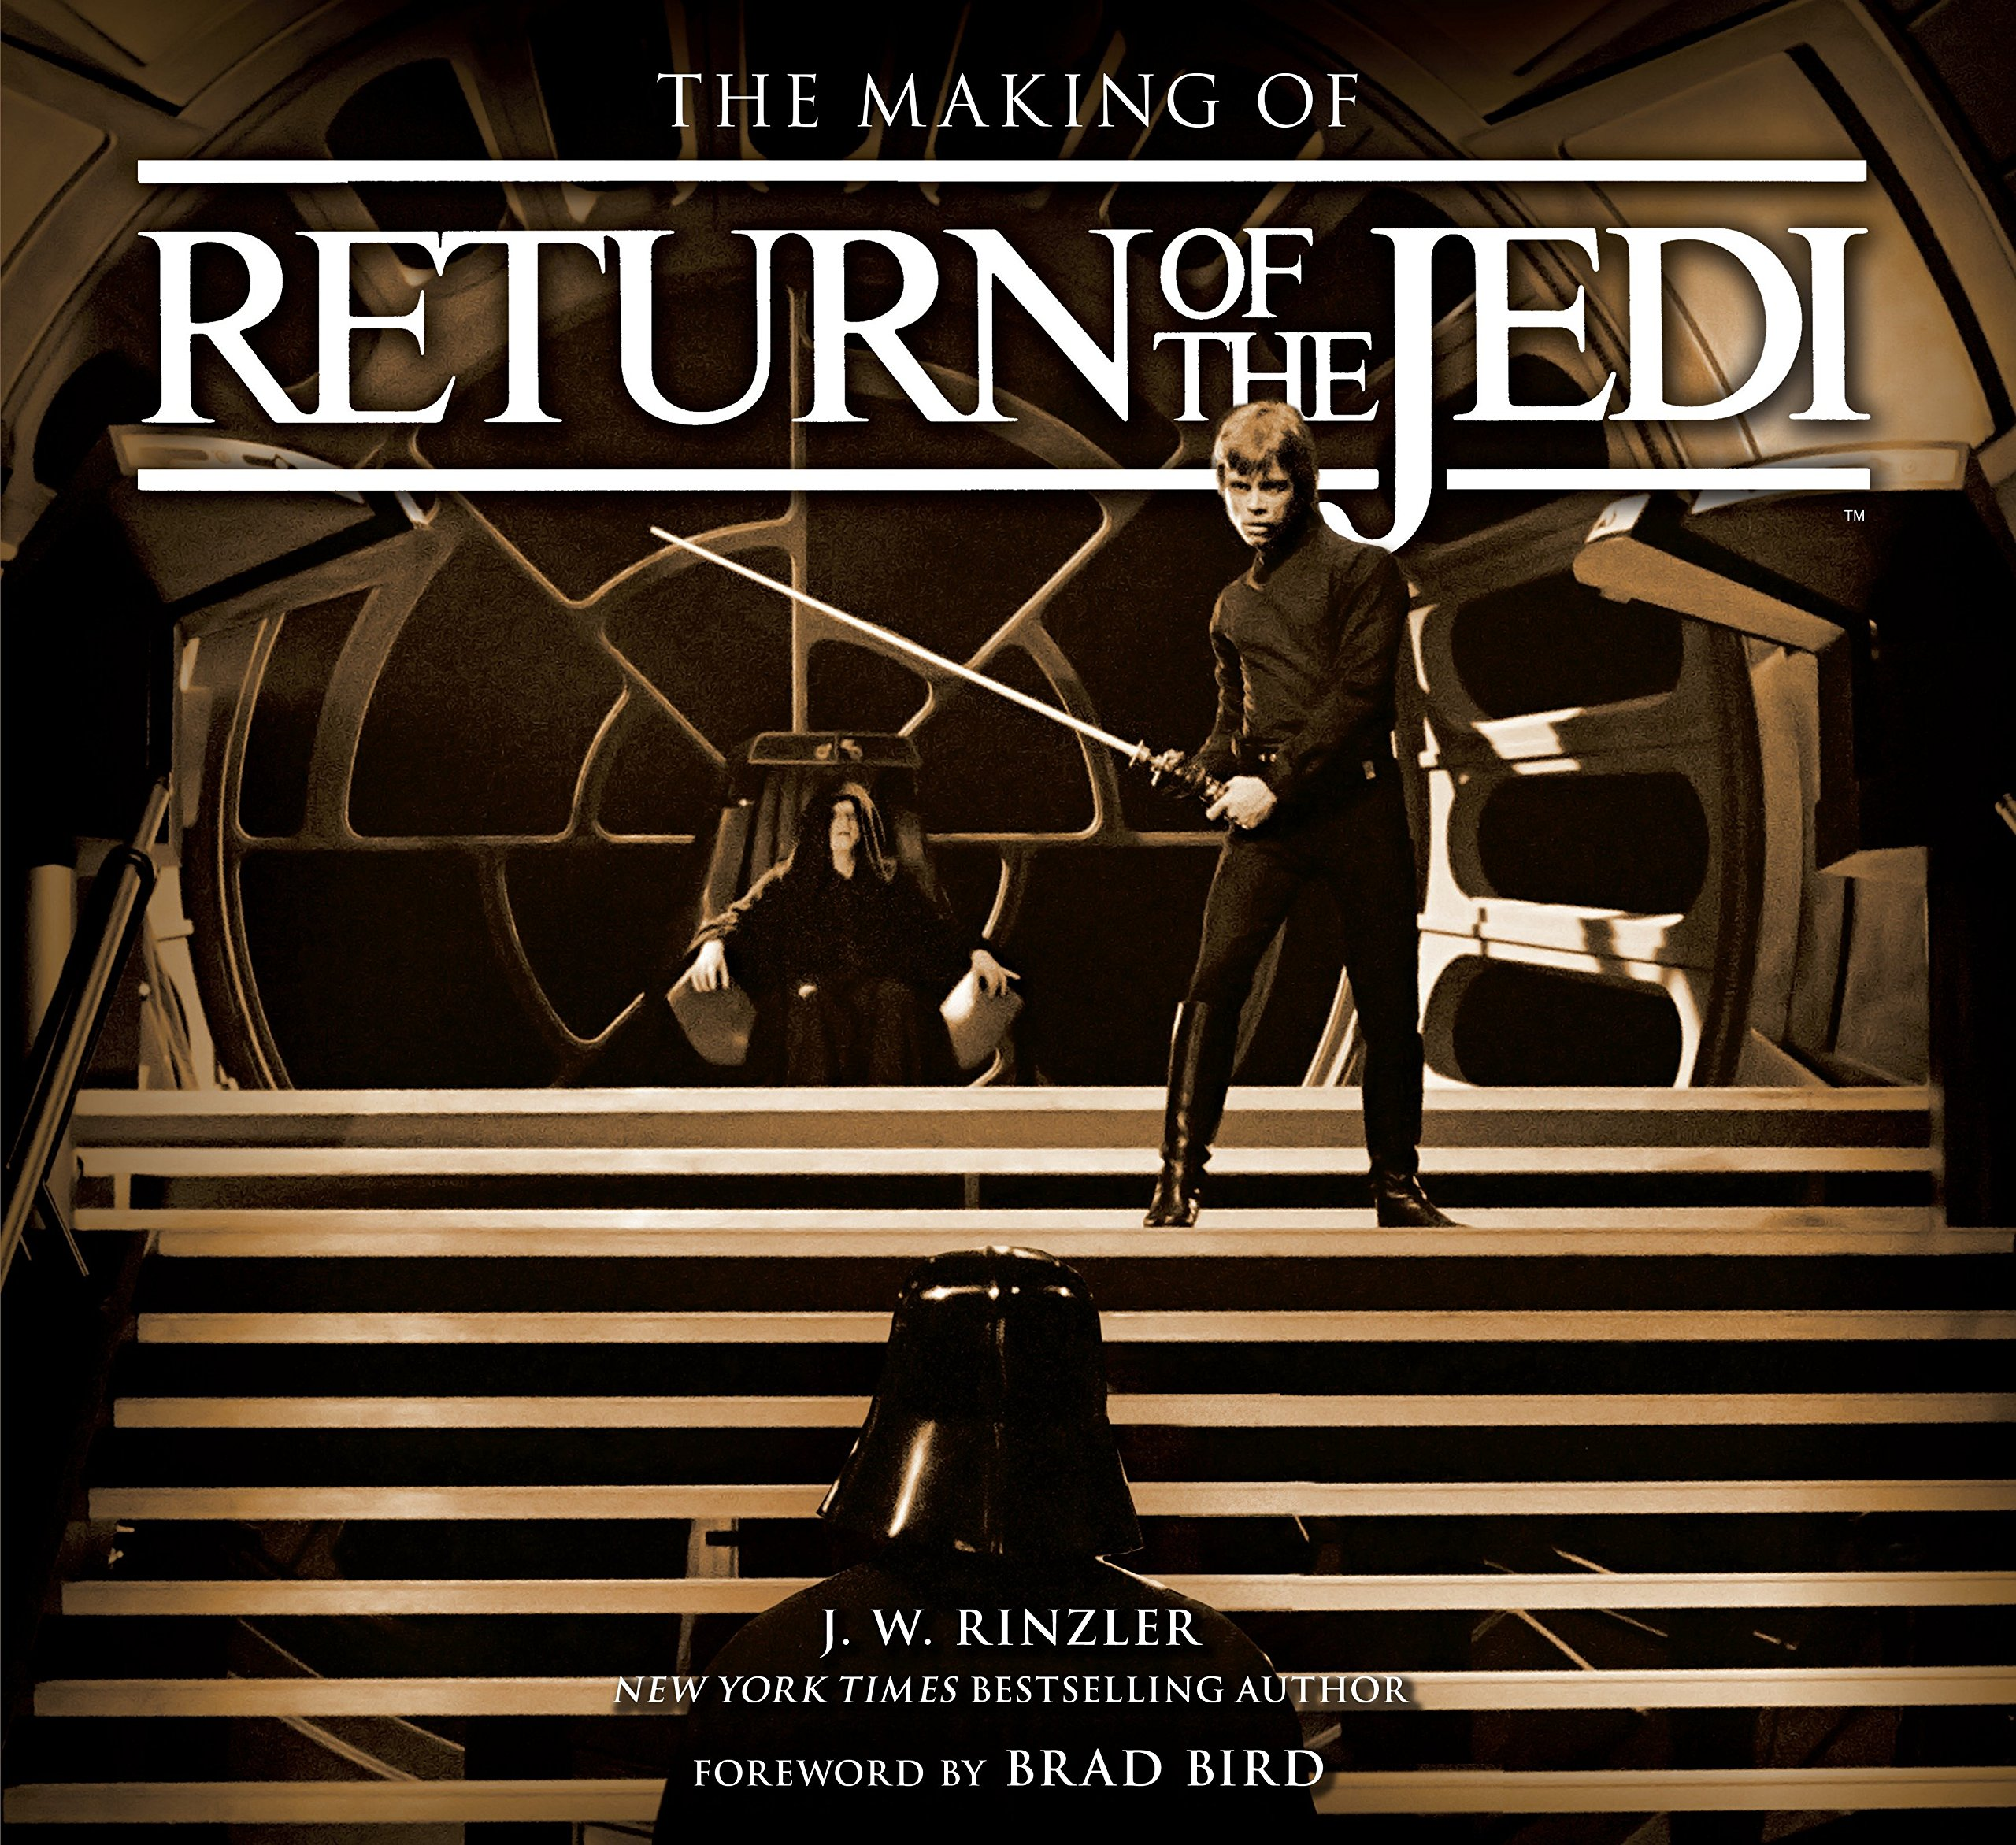 The Making of Return of the Jedi (ebook)